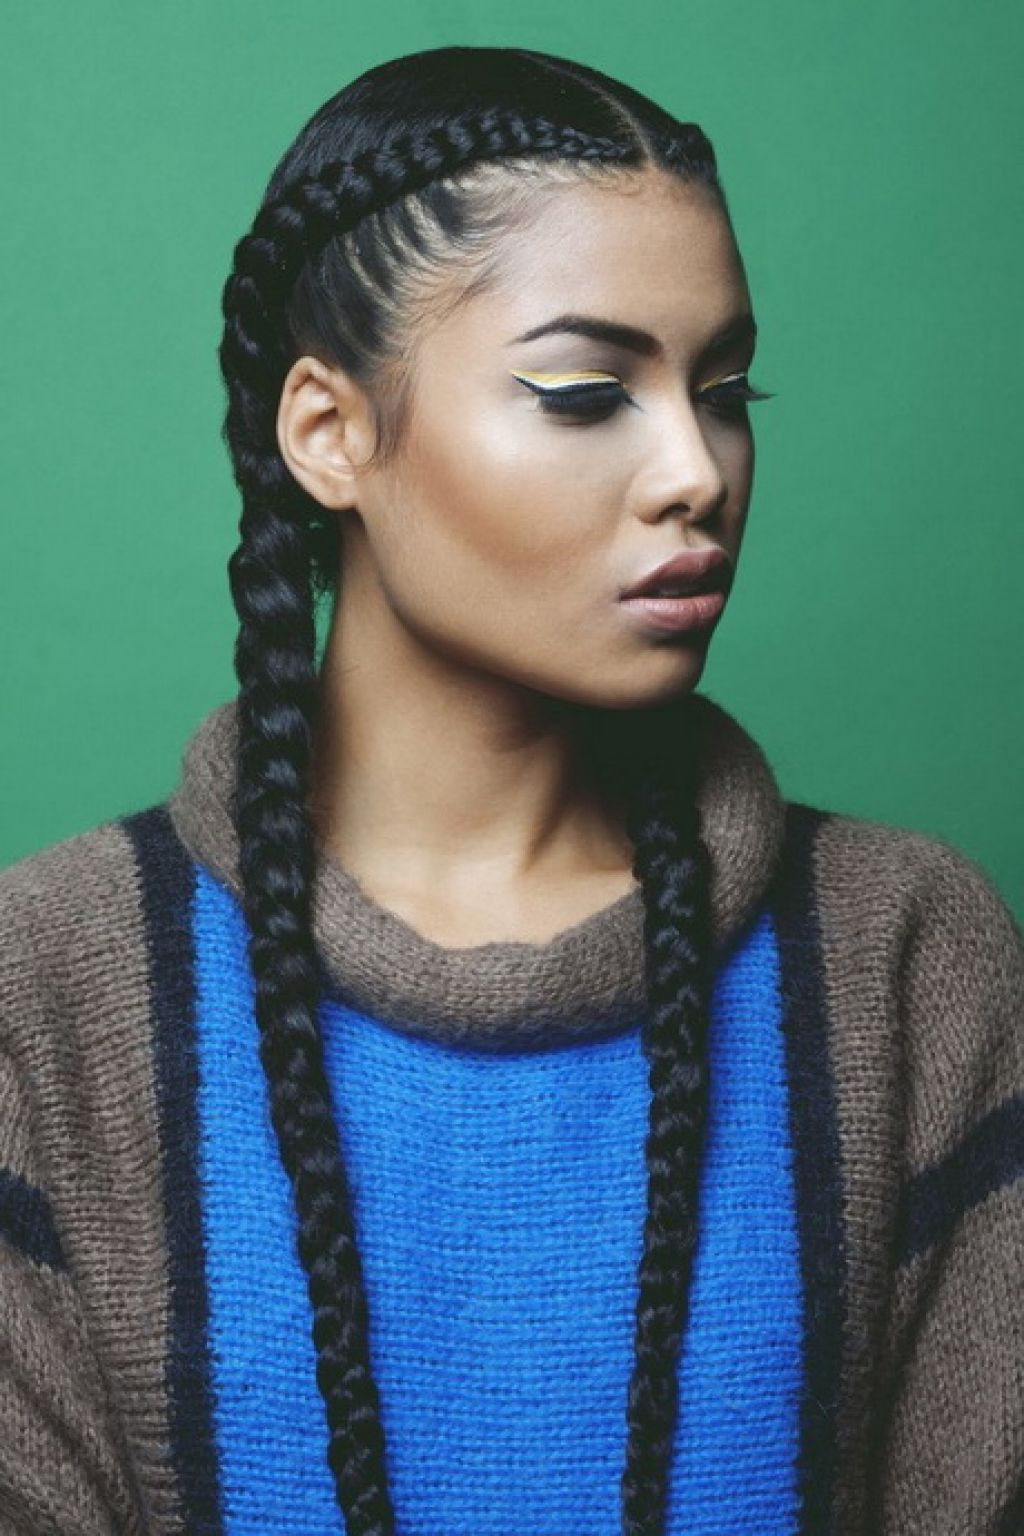 French Braid Hairstyles For Black Women (View 7 of 20)